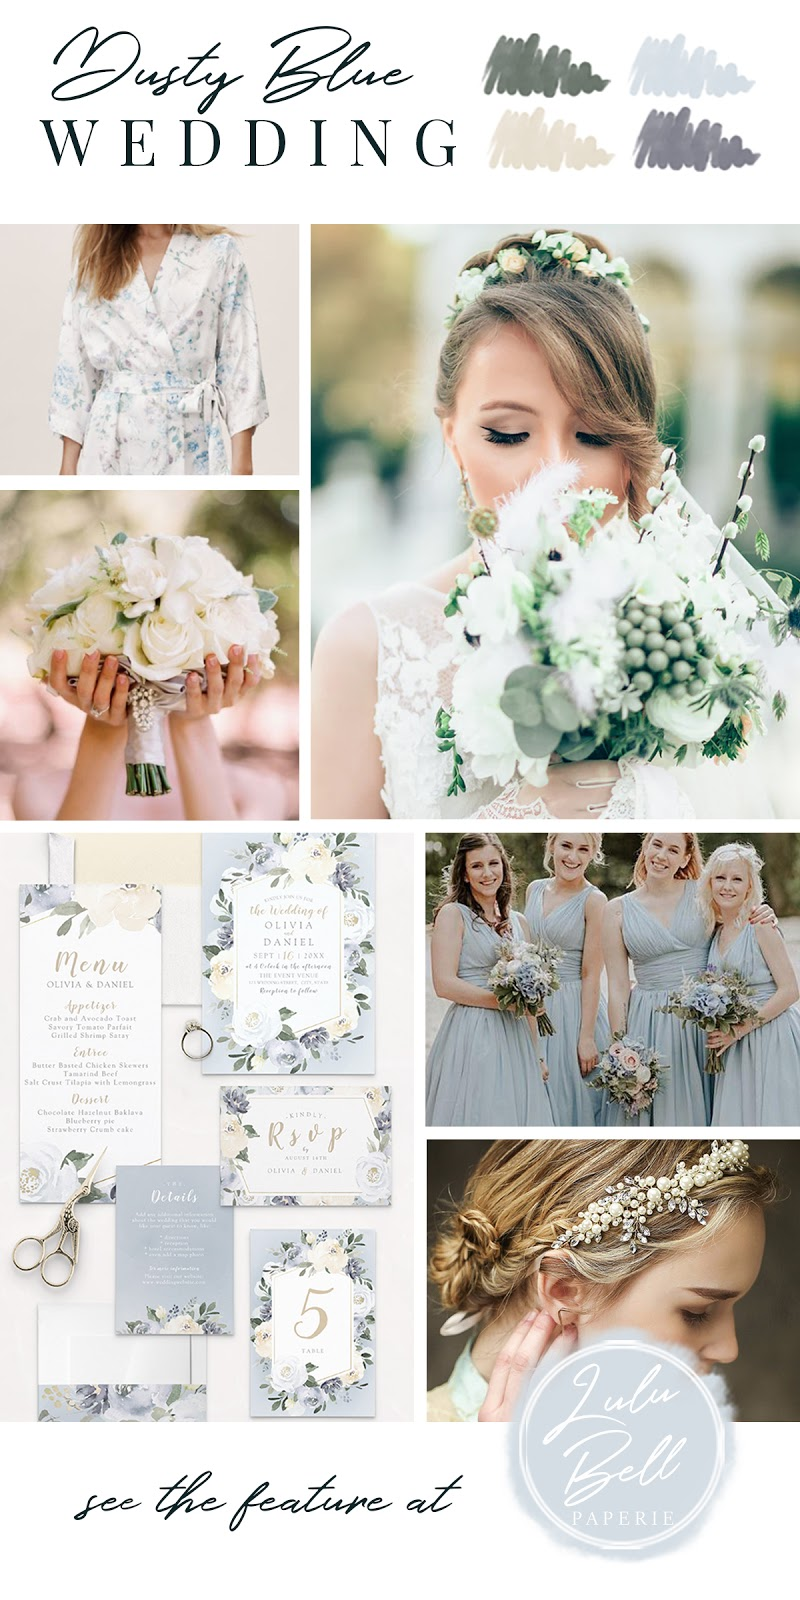 Dusty Blue Yellow and Green Wedding Color Palette Inspiration - Bridal Robes, Bride Photography, Floral Bouquet, Invitation Suite, Bridesmaid Dresses, and Wedding Headpiece